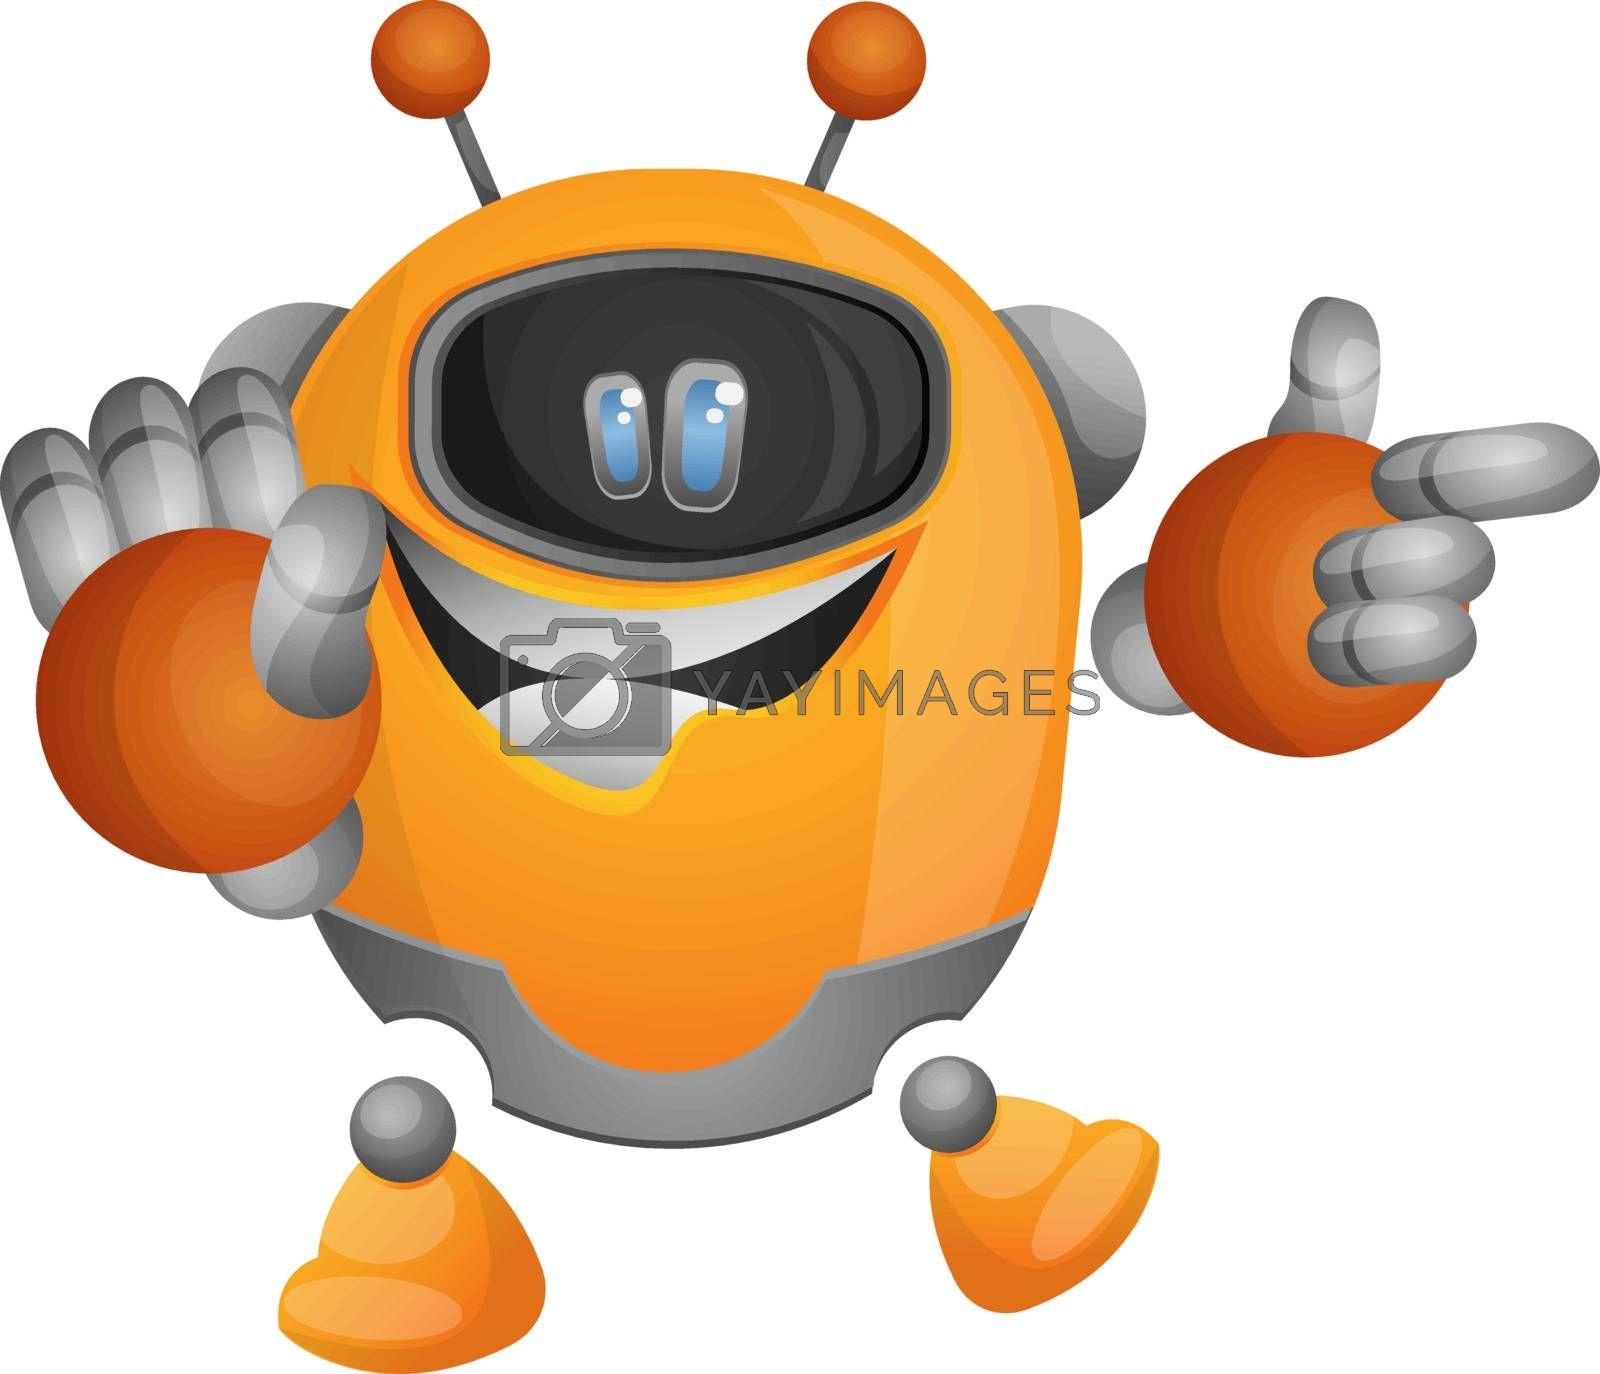 Royalty free image of Cute orange robot pointing at something illustration vector on w by Morphart